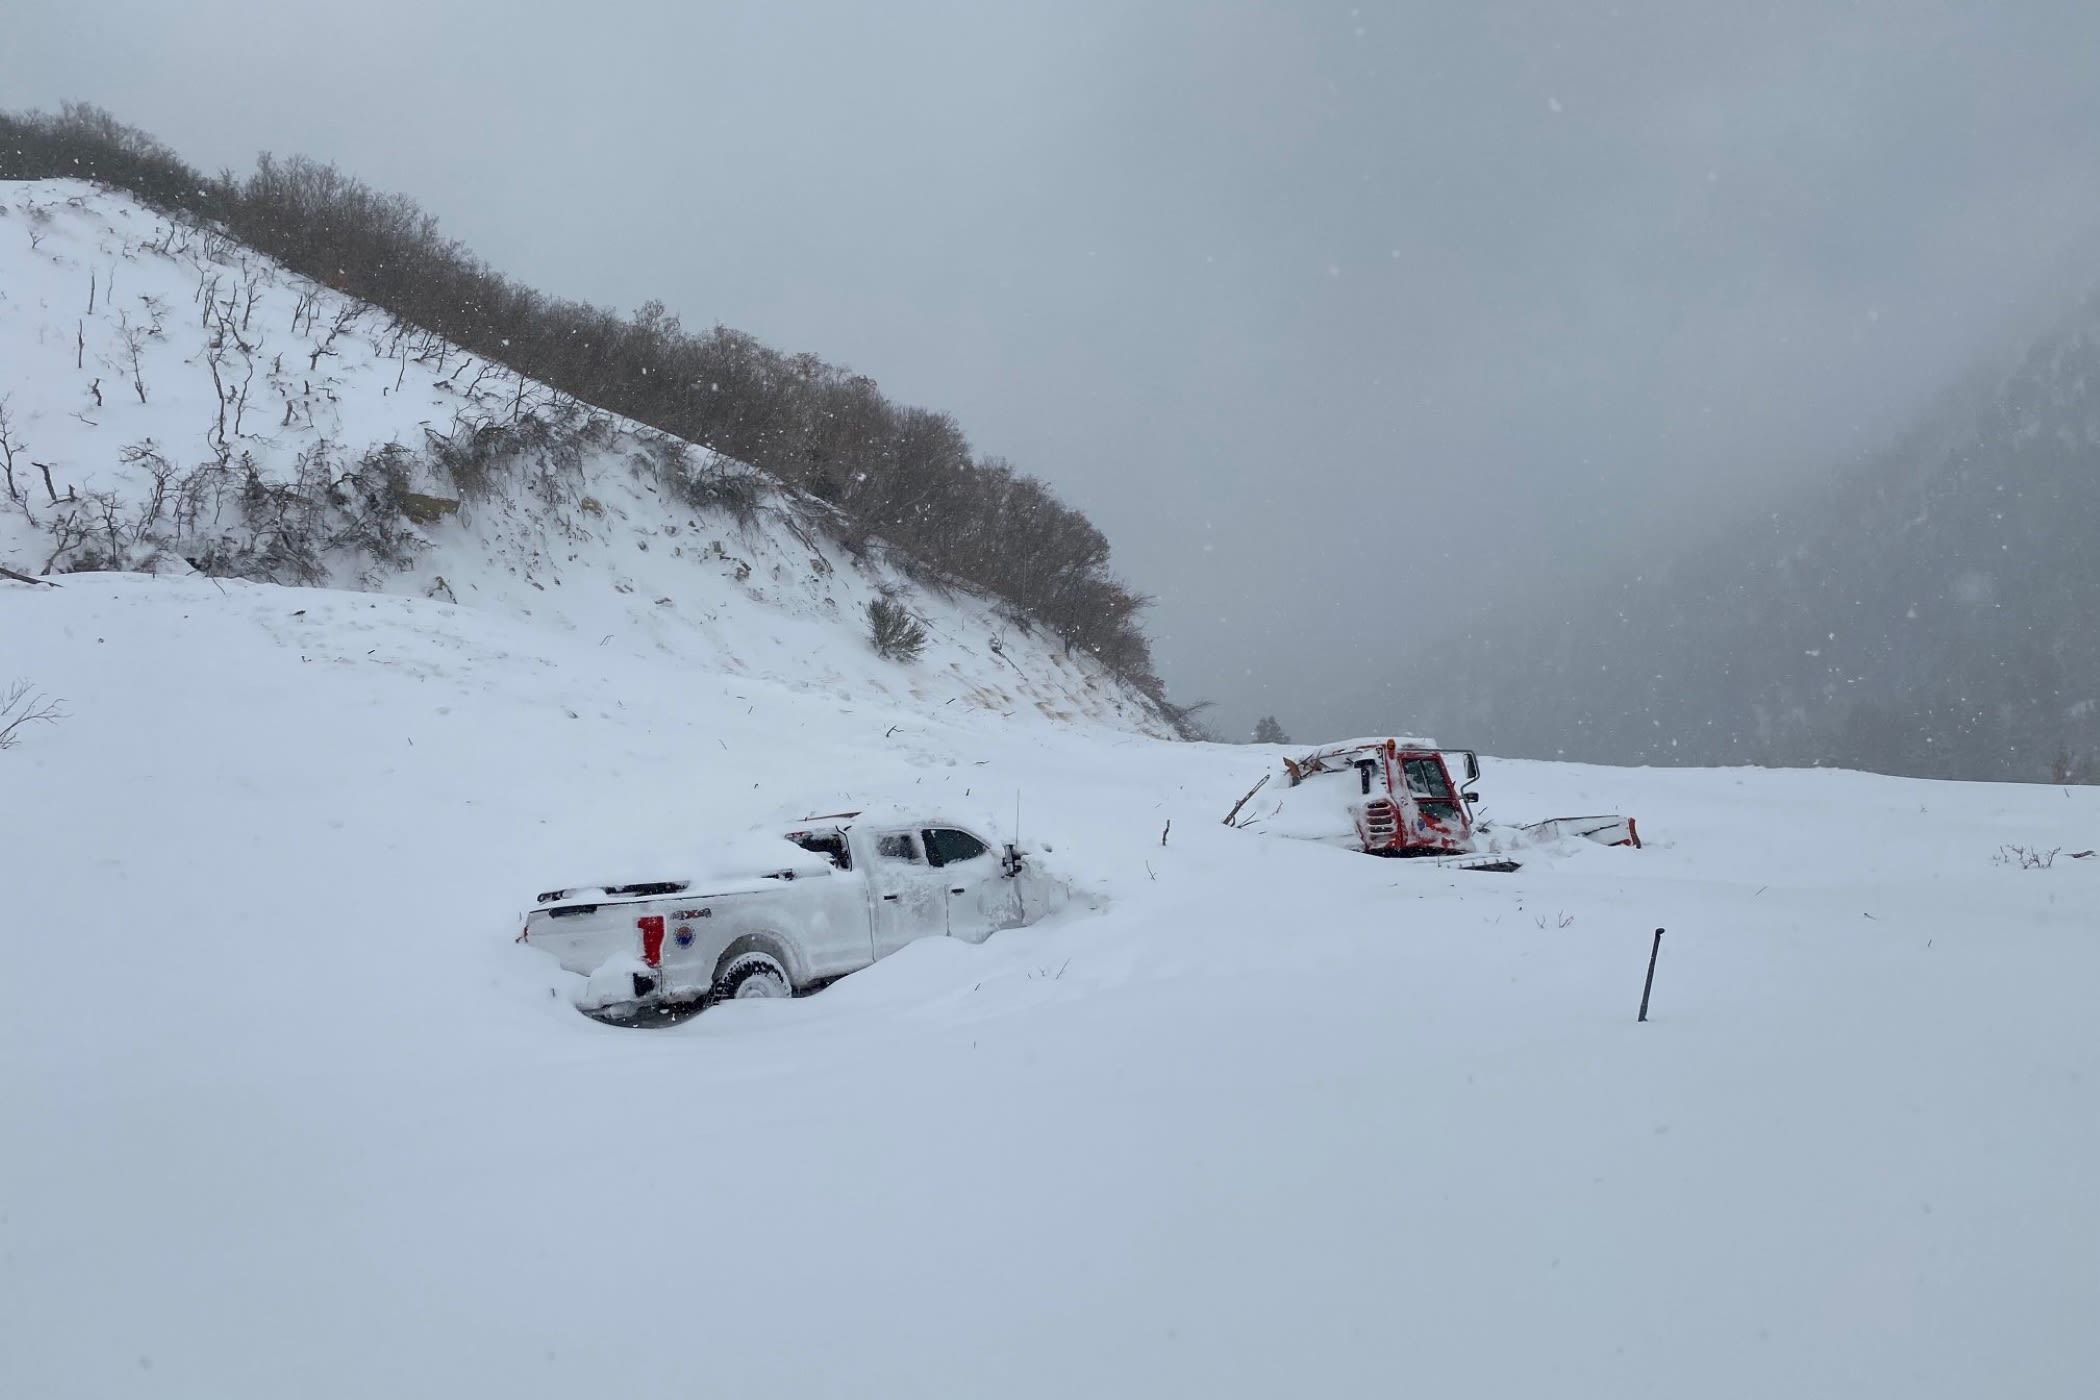 A UDOT truck caught in a natural avalanche